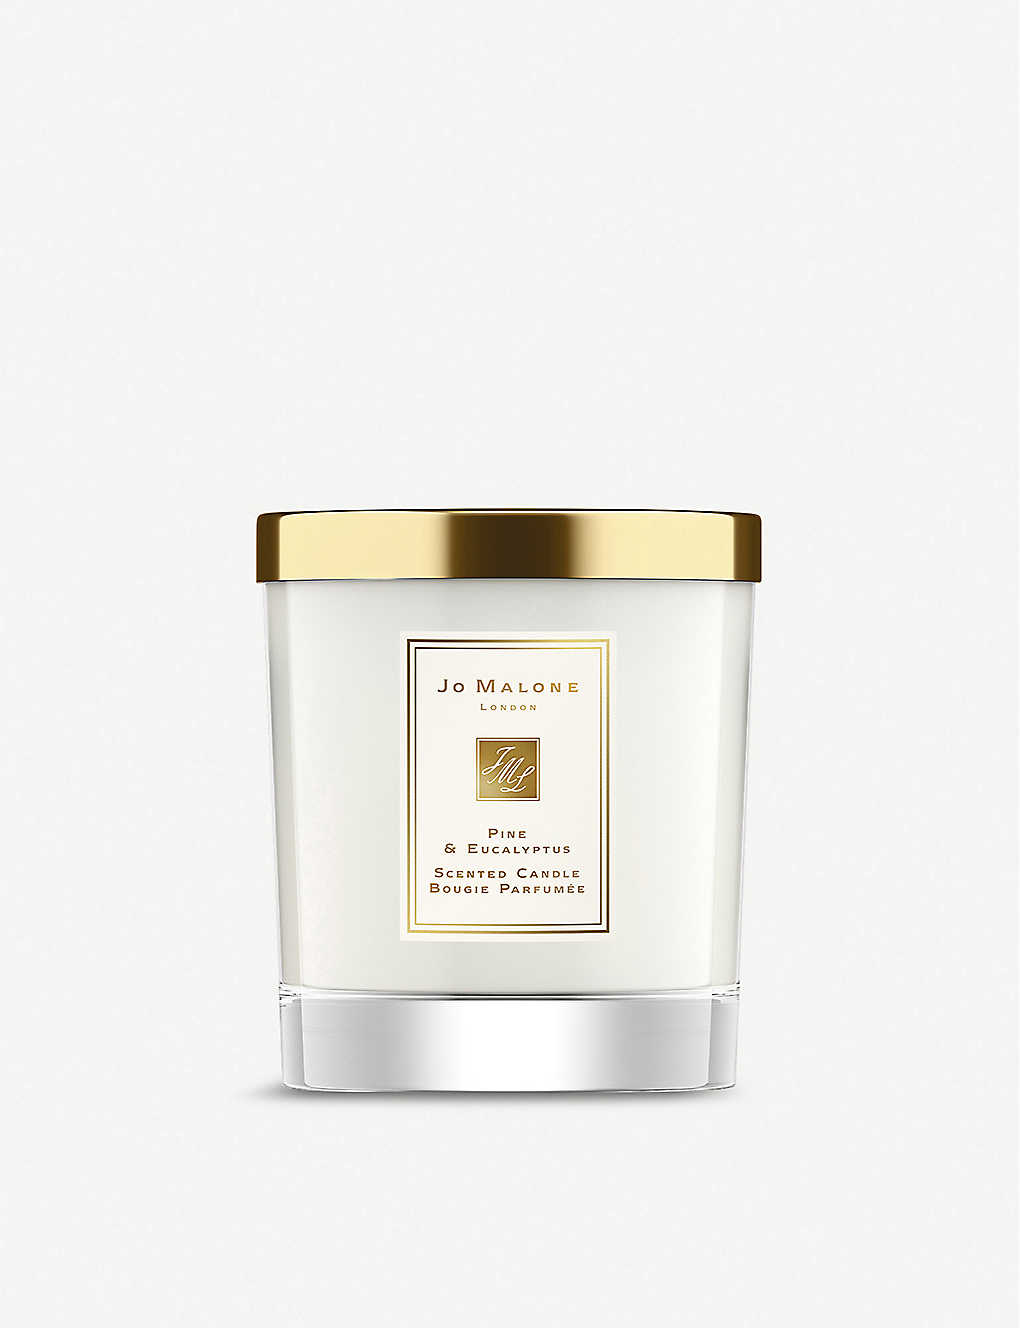 JO MALONE LONDON: Pine & Eucalyptus scented candle 200g